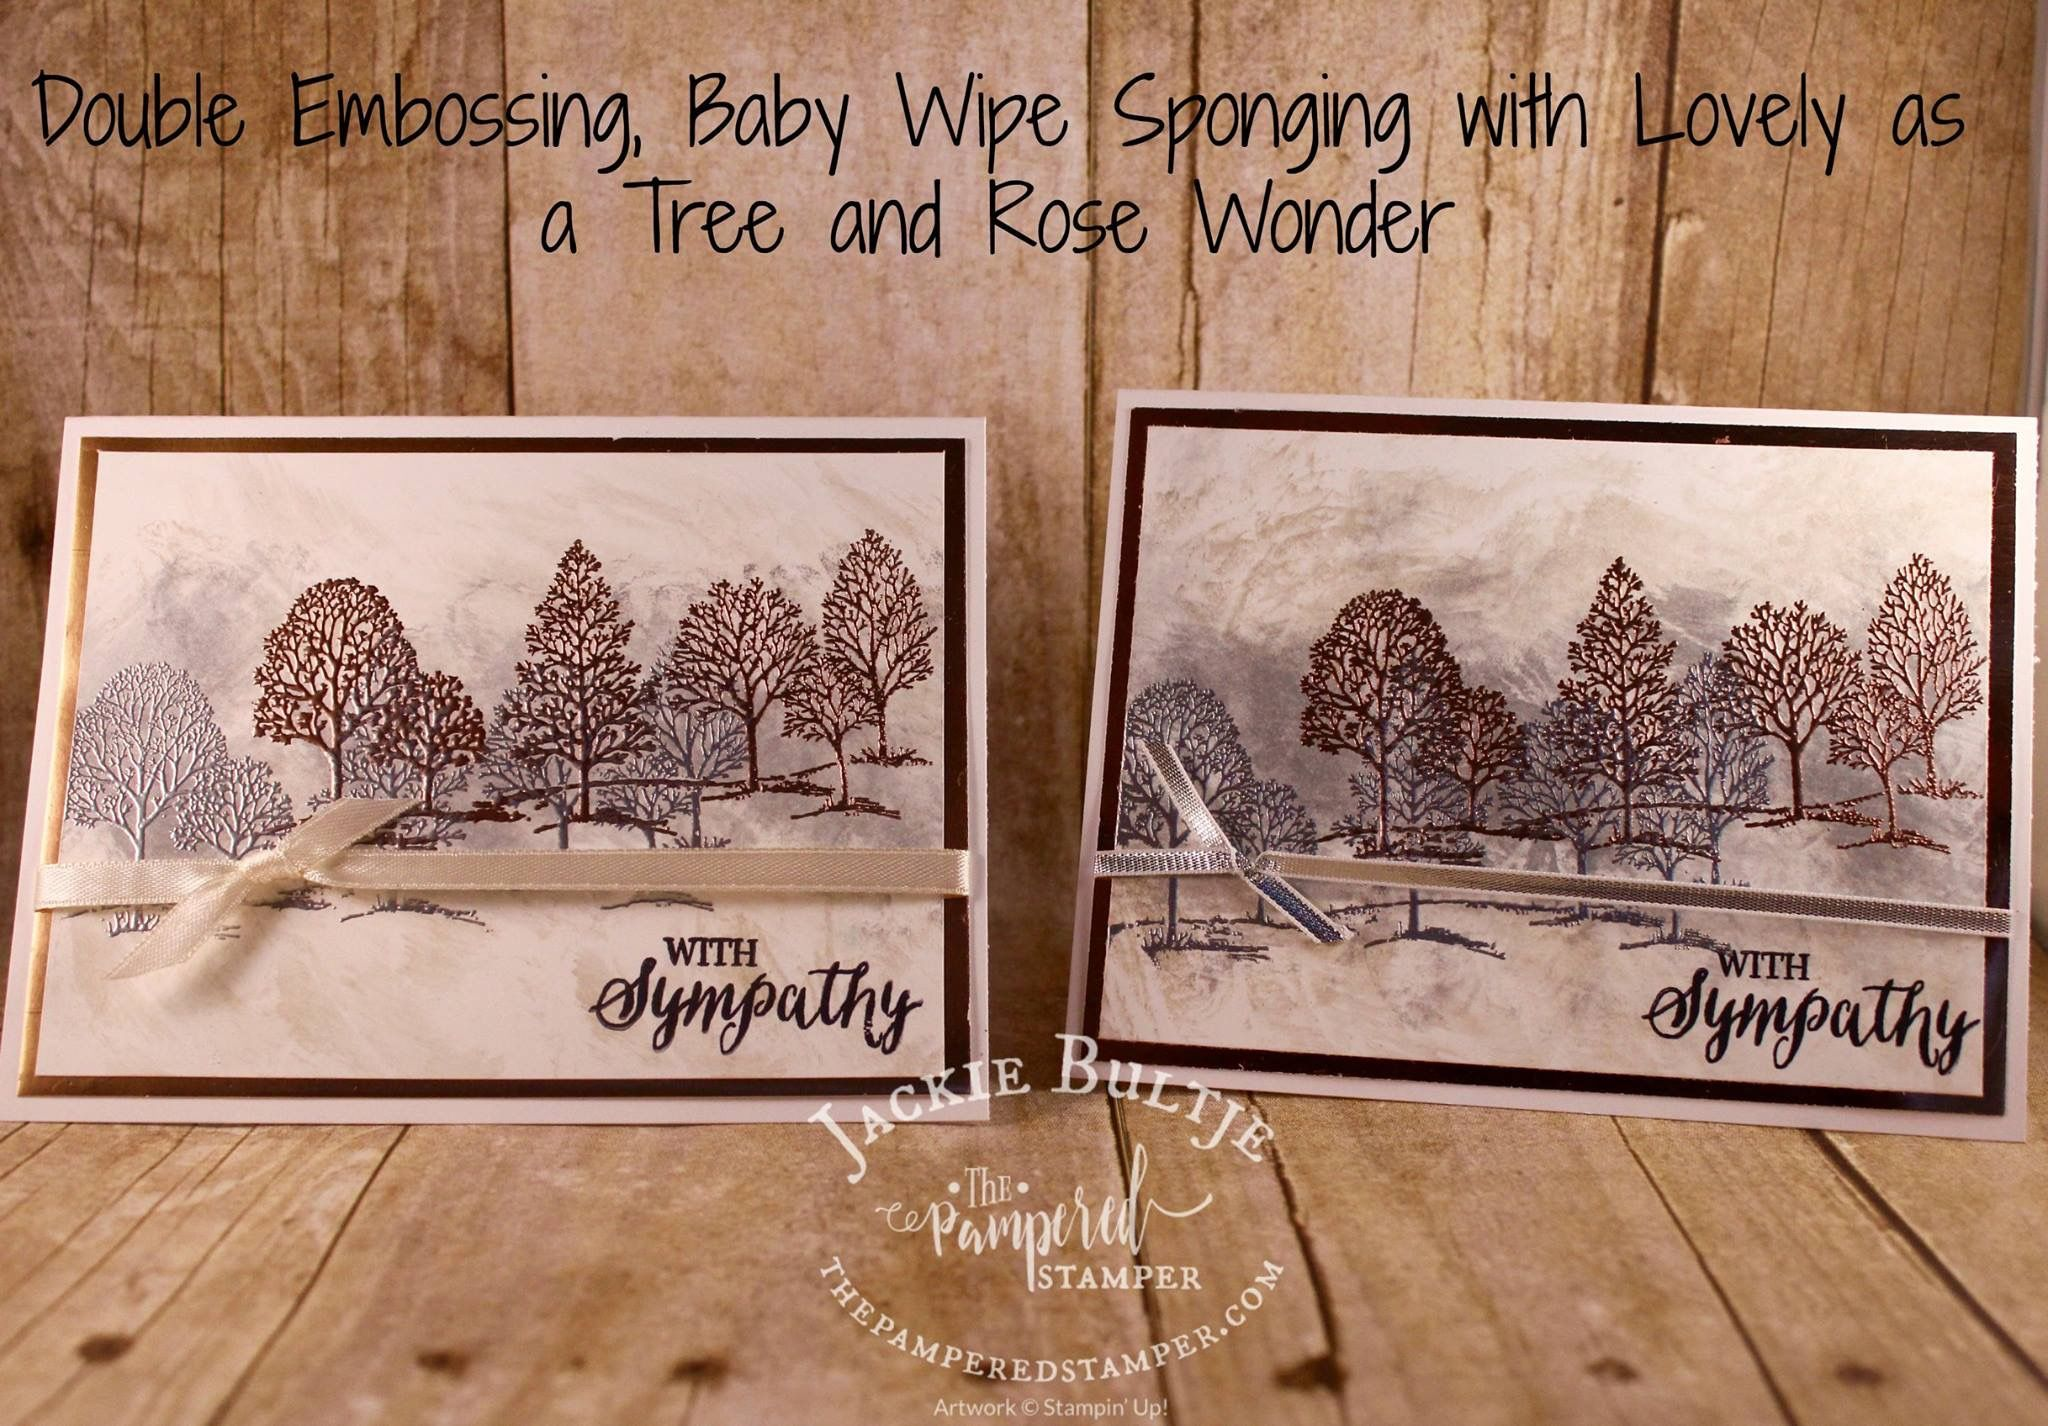 Pin by Deb Wickware on Lovely as a tree cards Baby wipes